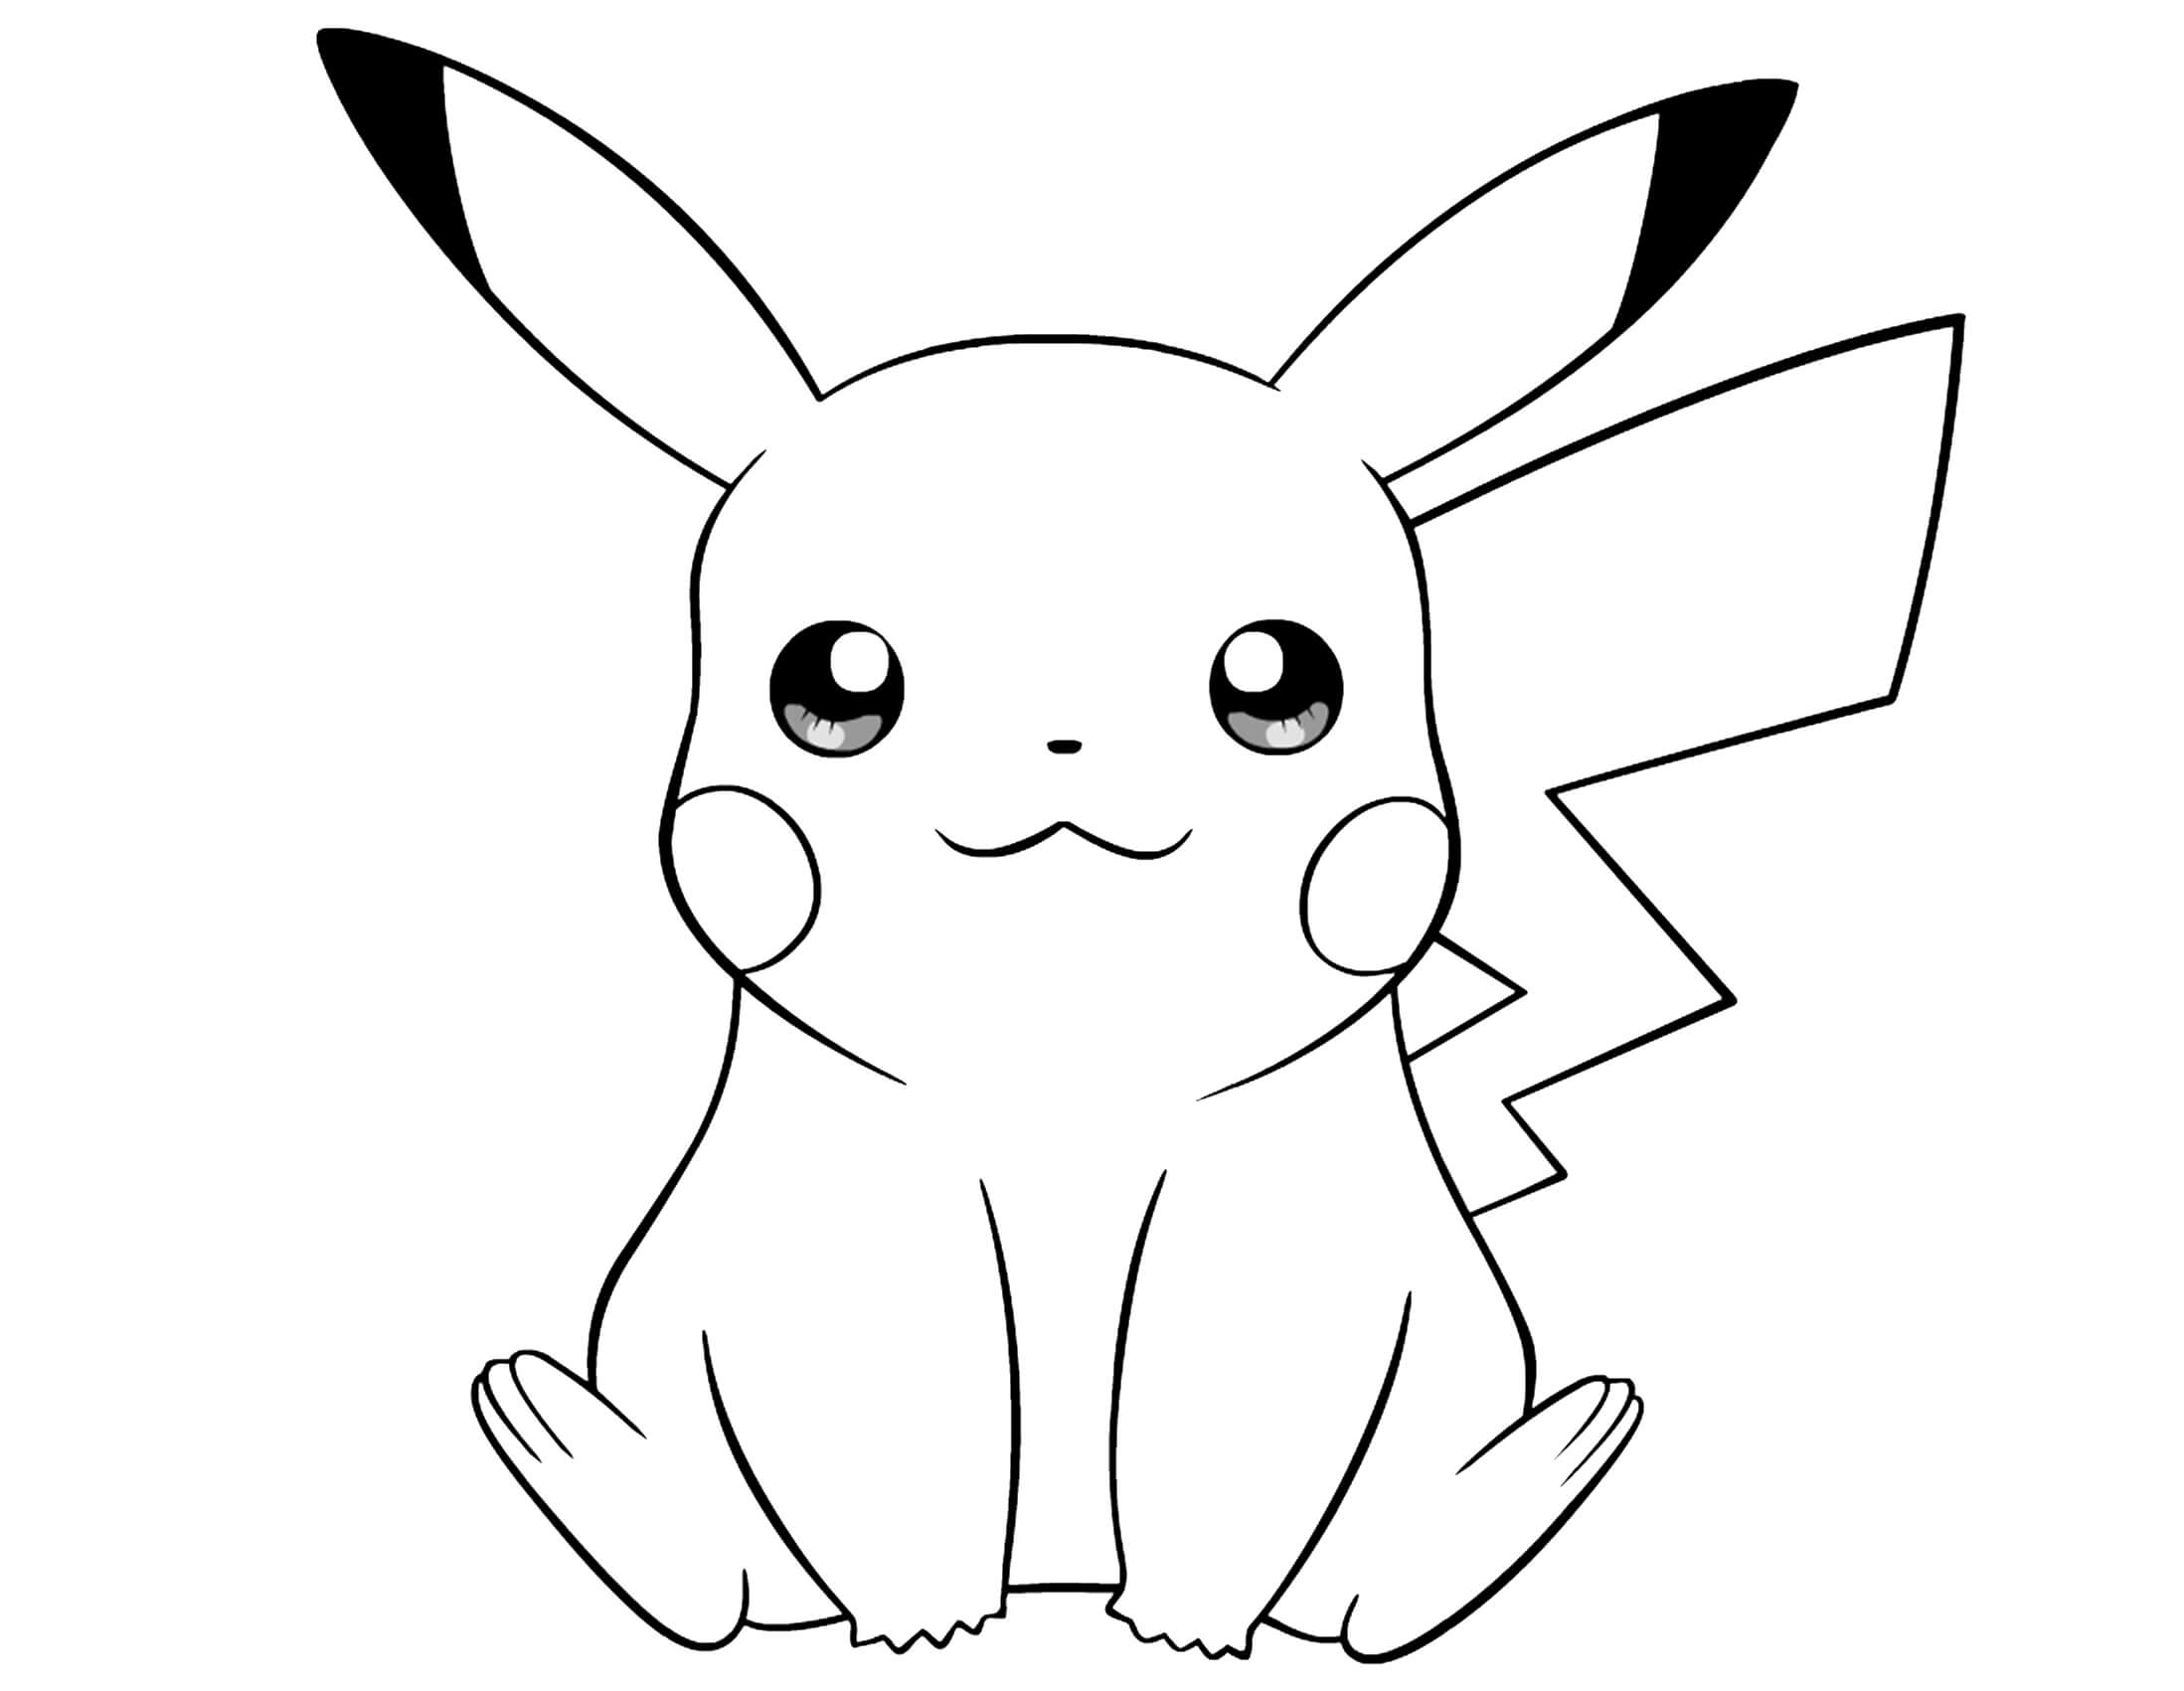 Pikachu coloring pages to download